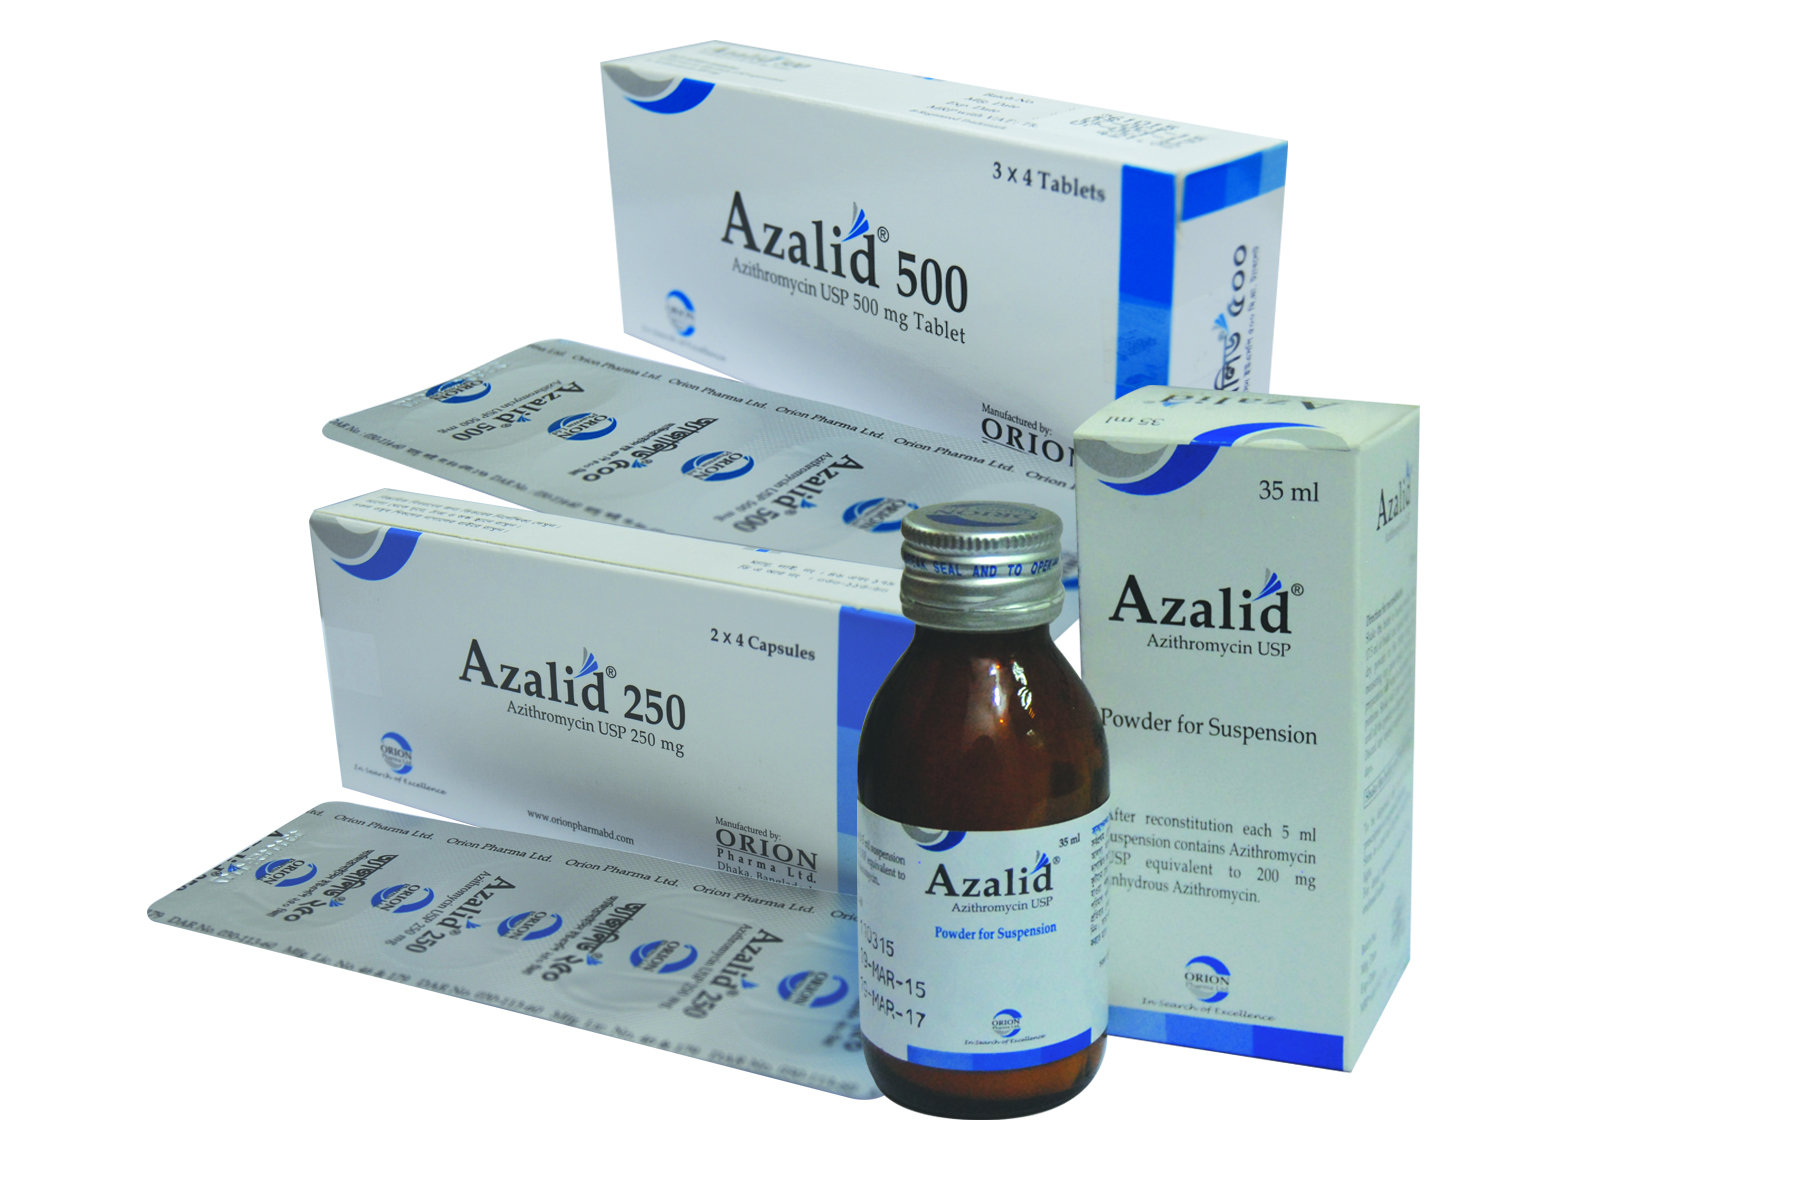 Zithromax price in pakistan rupees